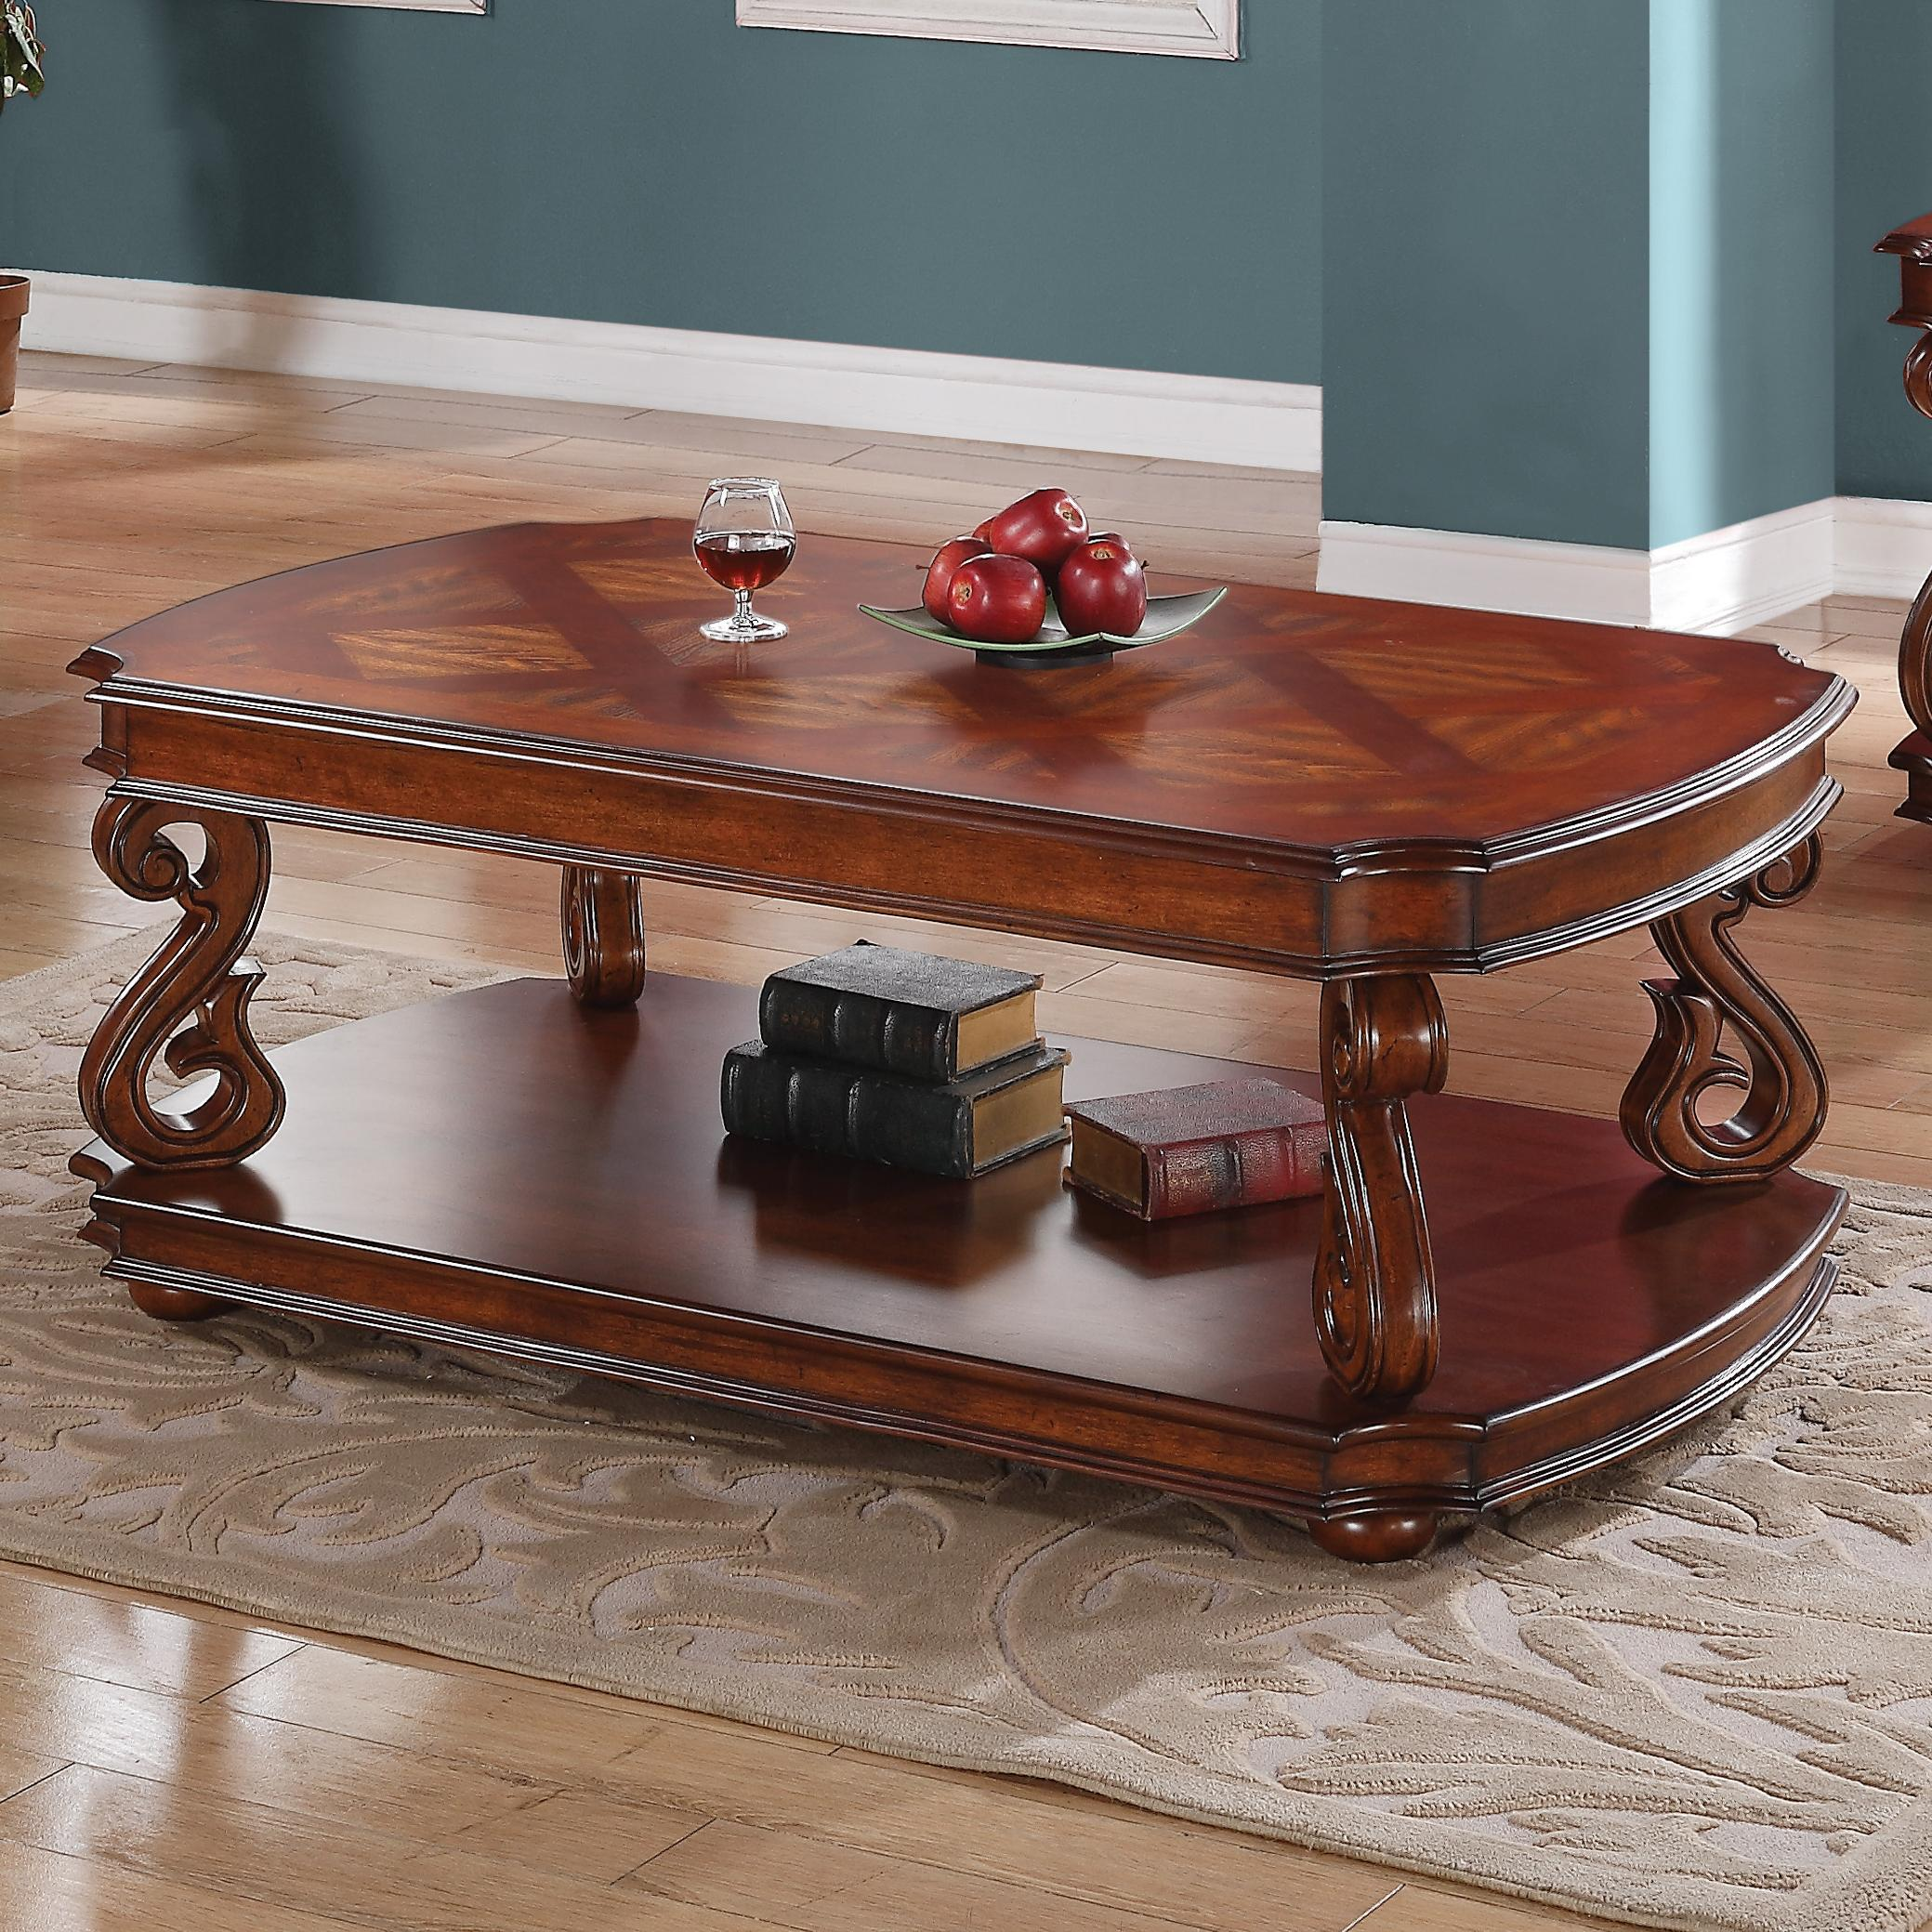 Occasional Group Traditional Coffee Table With Parquet Veneers In Dark Cherry Finish Quality